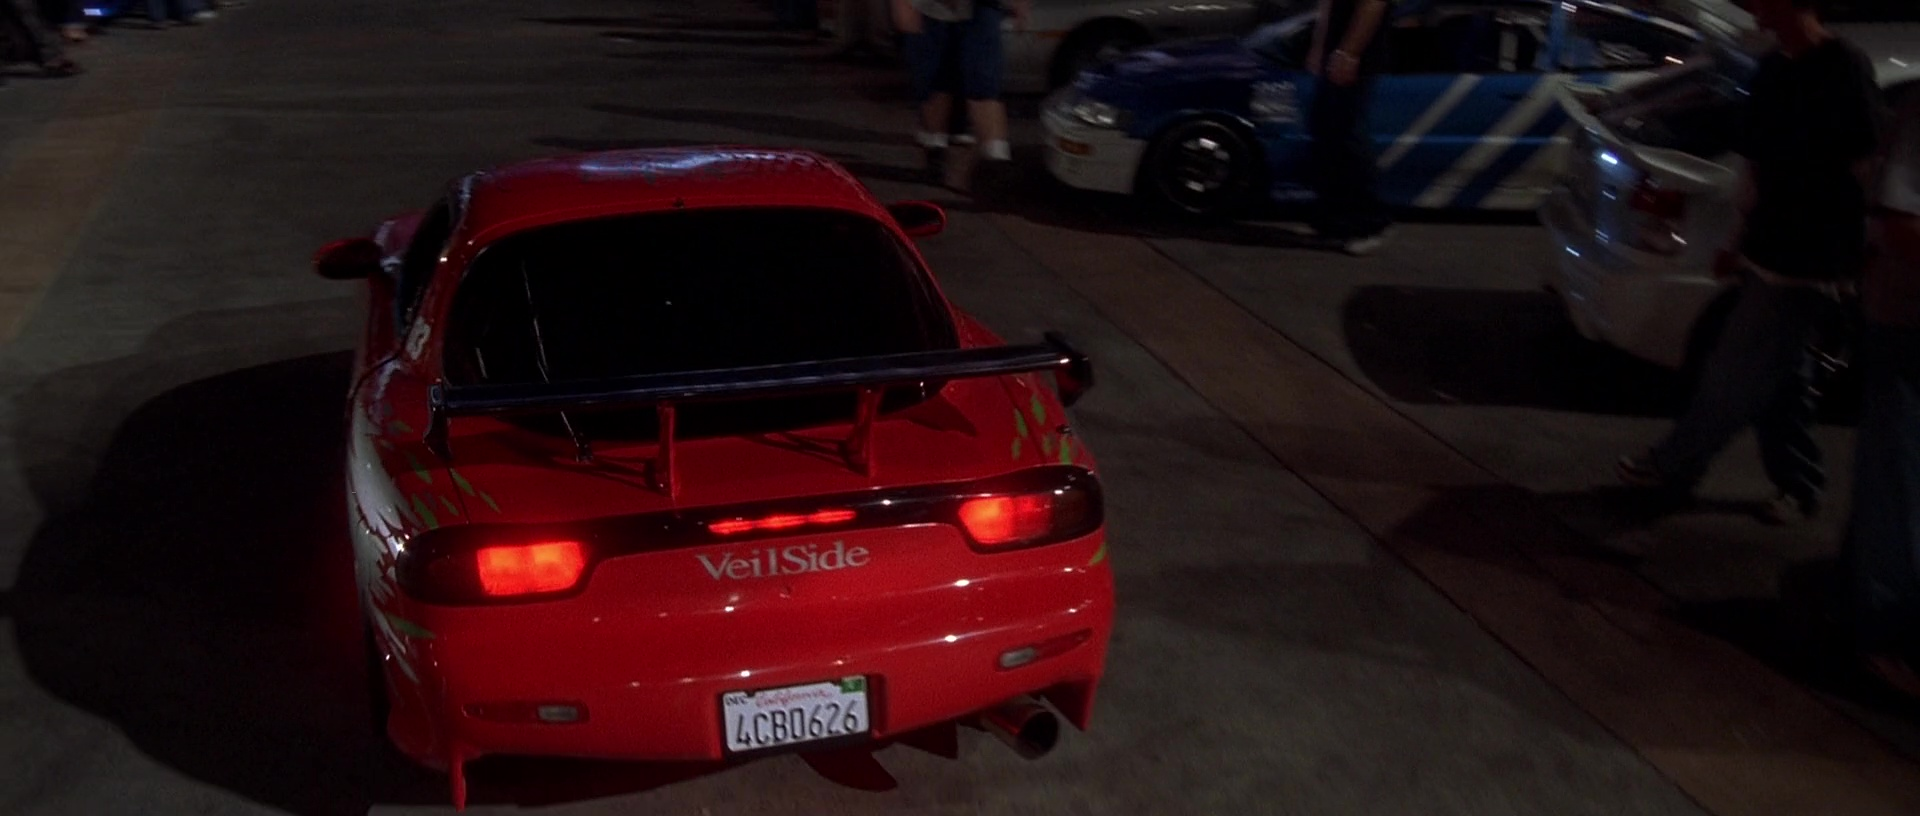 mazda rx7 fast and furious. domu0027s mazda rx7 fd rear viewjpg rx7 fast and furious o